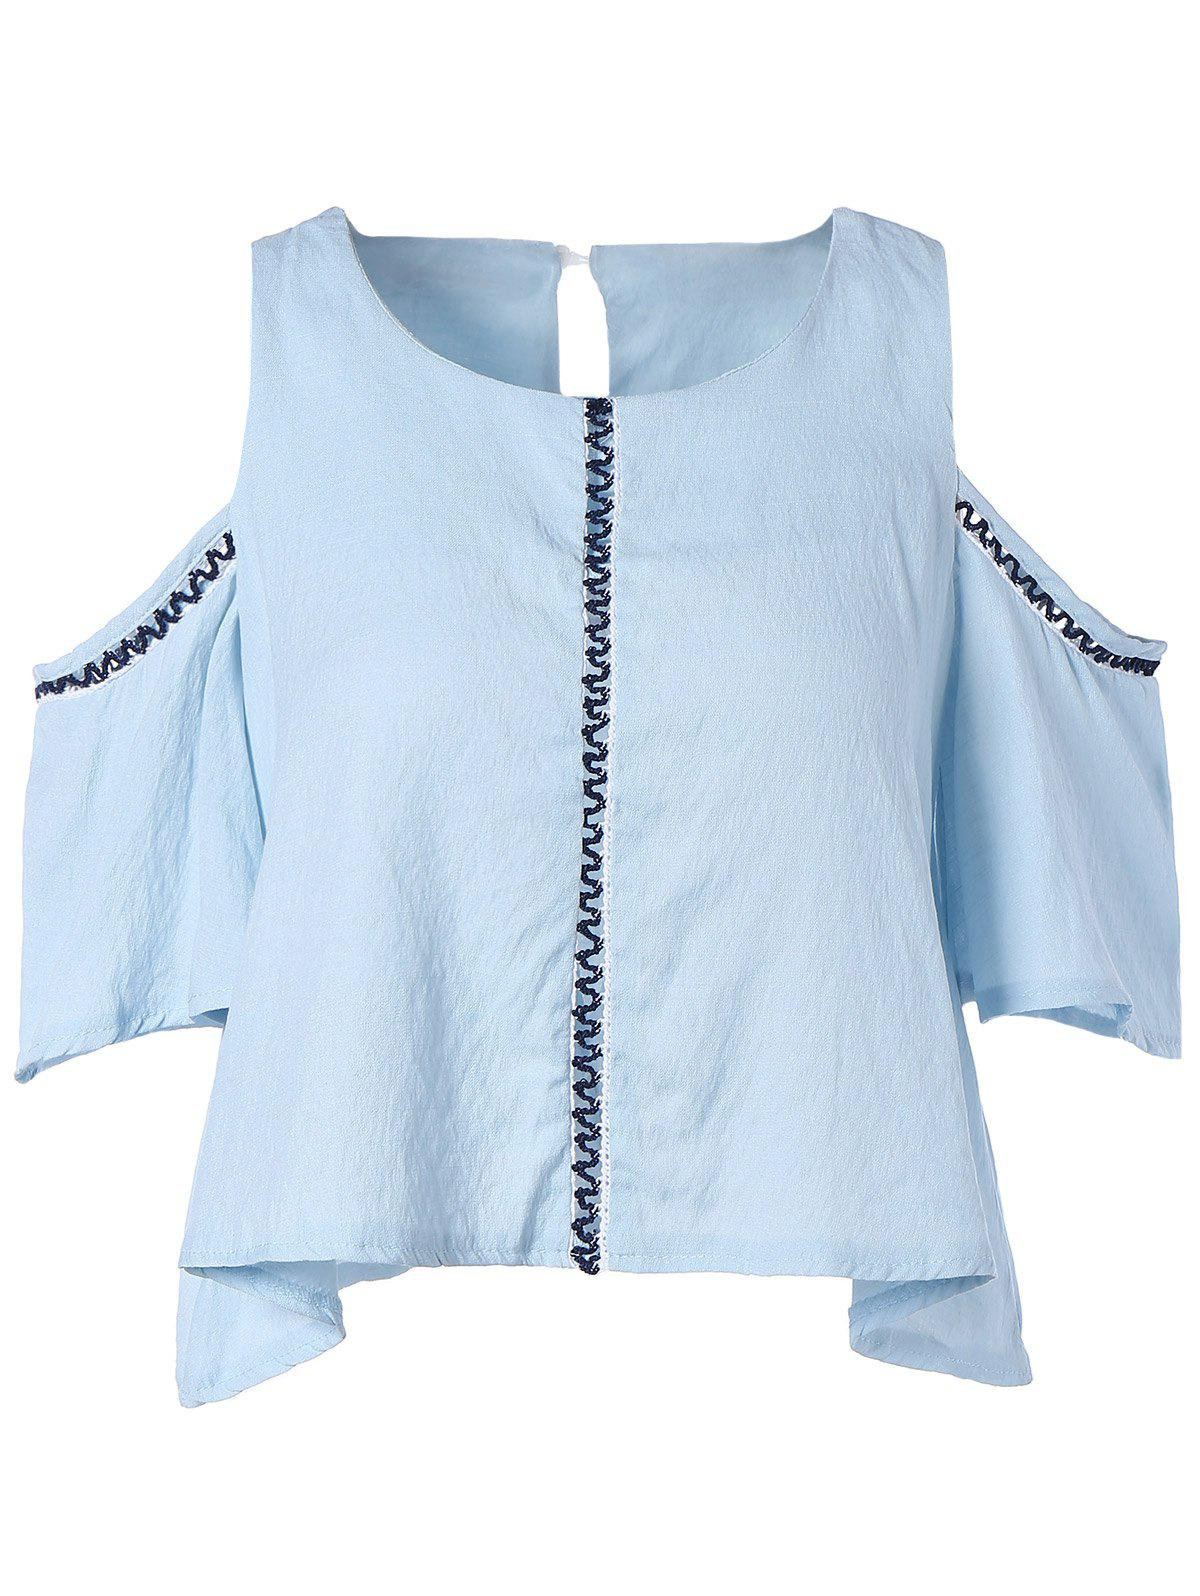 Cut Out Candy Color Blouse - ONE SIZE LIGHT BLUE